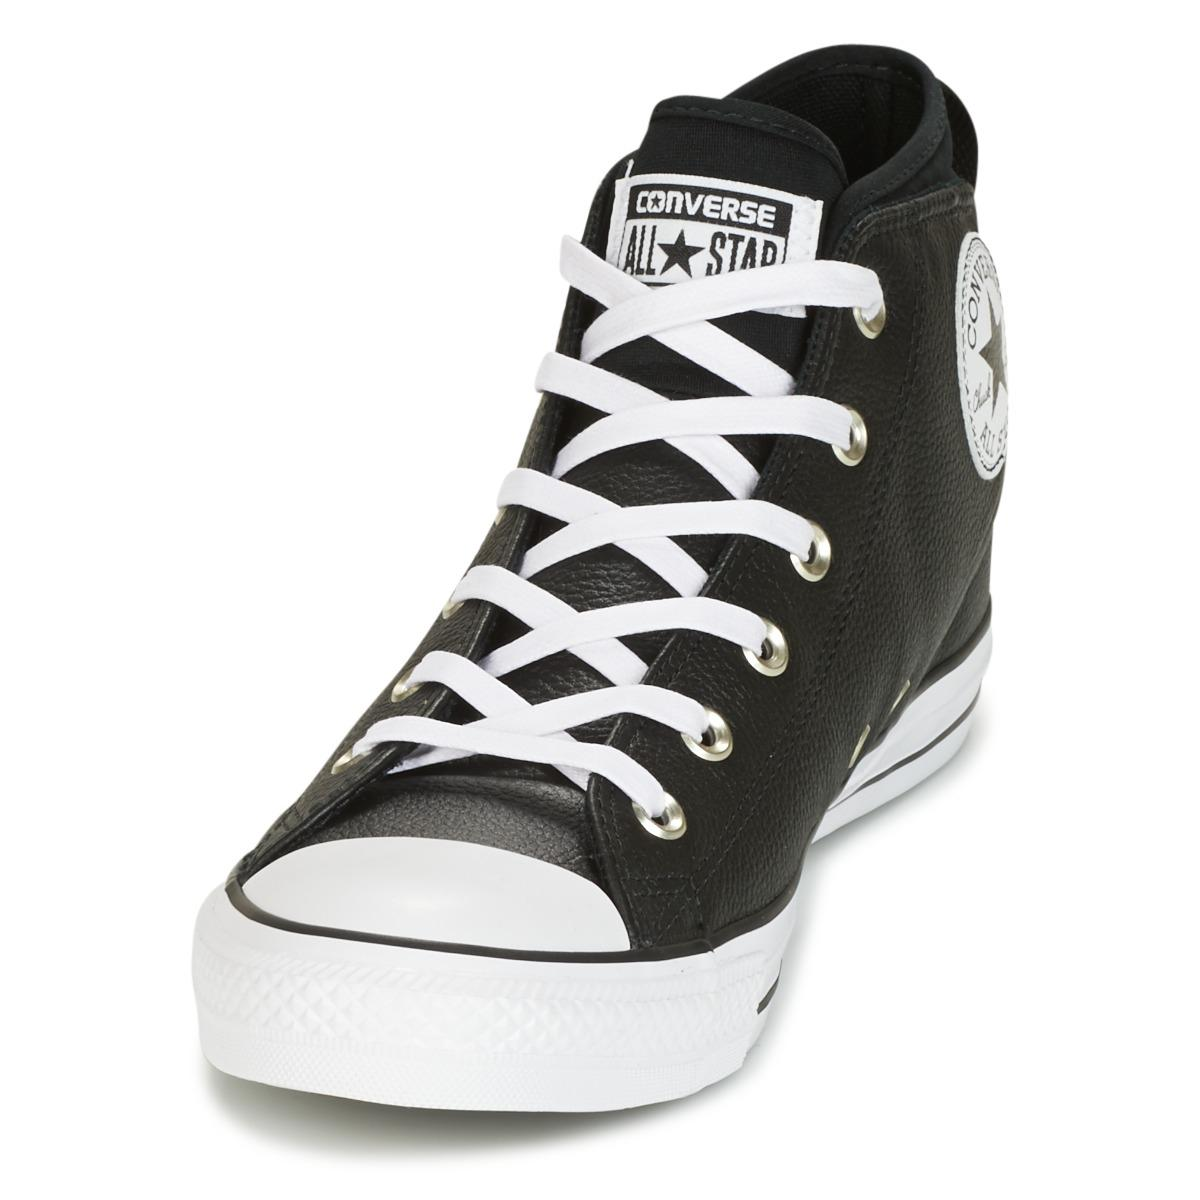 d76e16bb5784 Converse Chuck Taylor All Star Syde Street Shoes (high-top Trainers ...